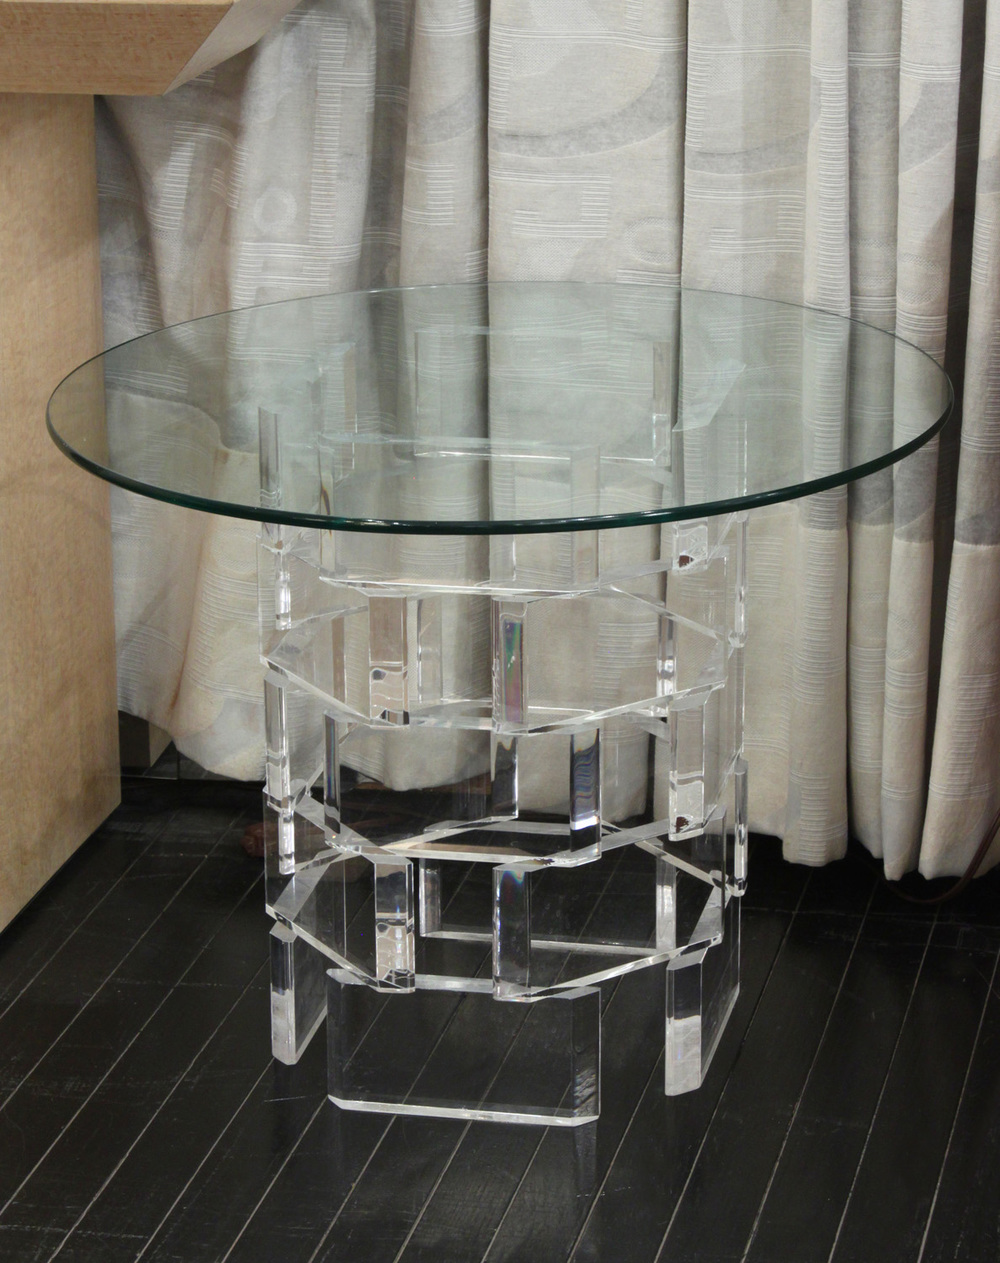 70's 45 stacked lucite blocks endtable159 detail4 hires.jpg